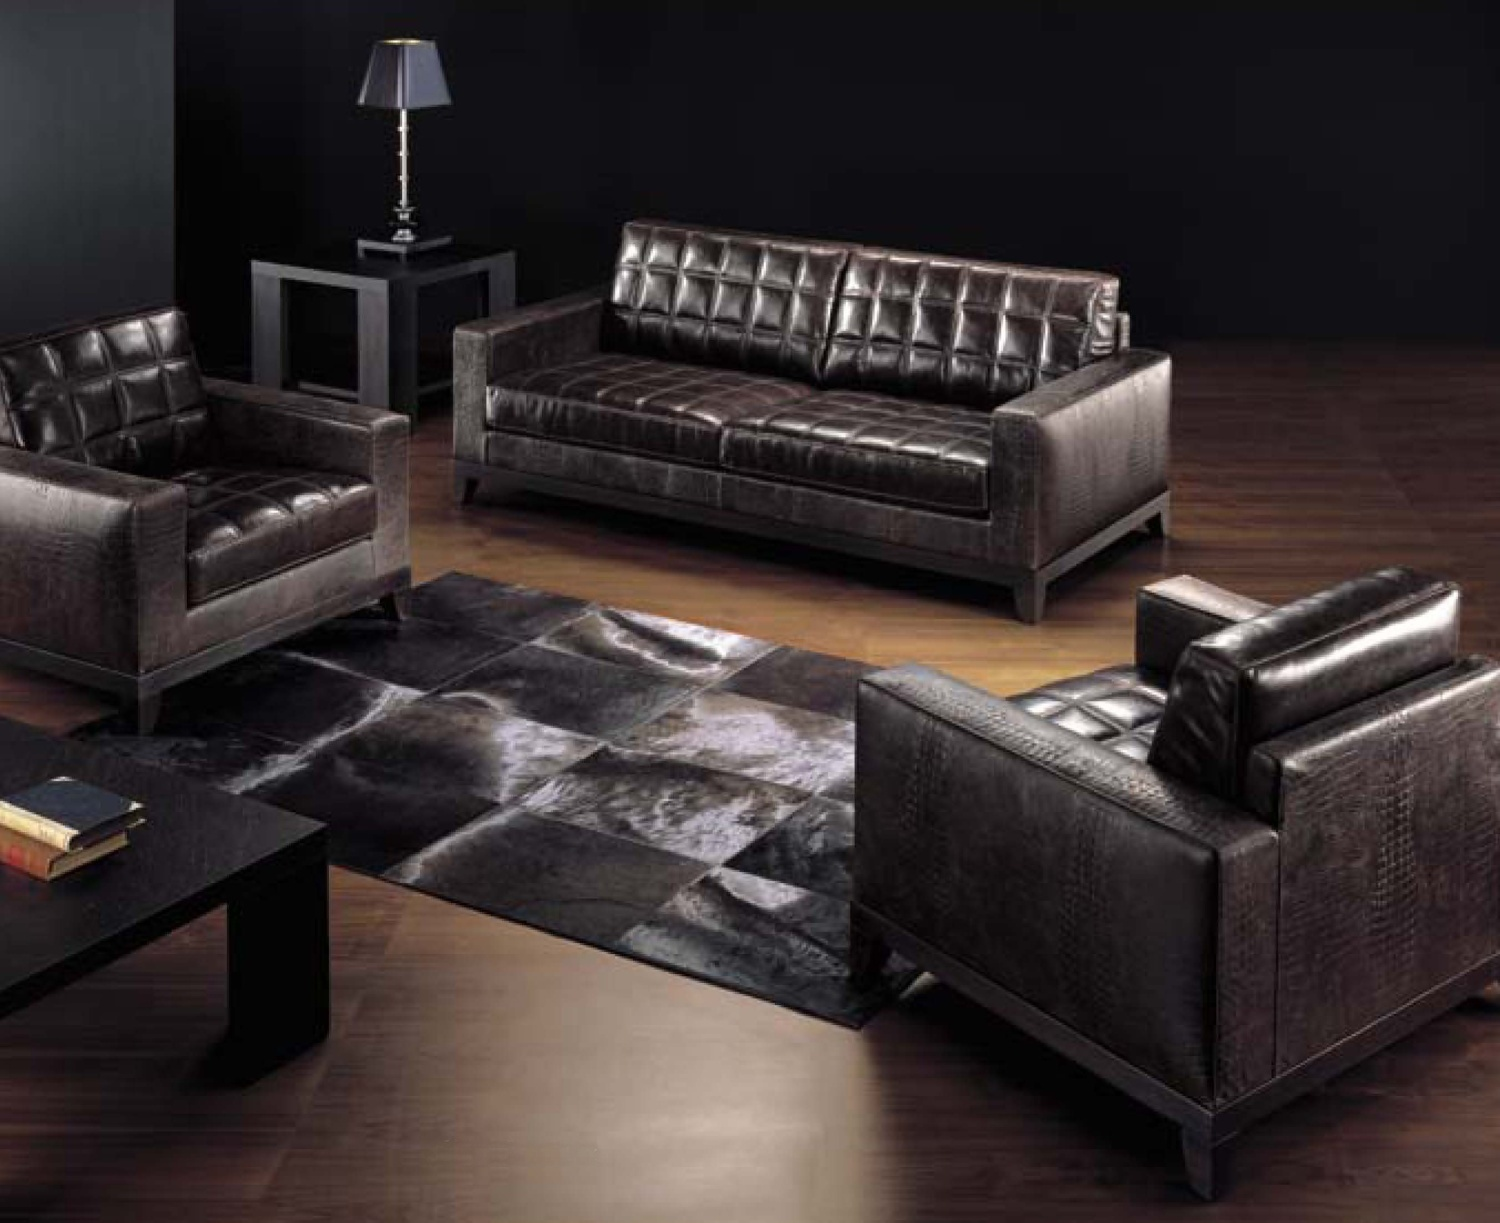 Three Seater Sofa In Leather Upholstery